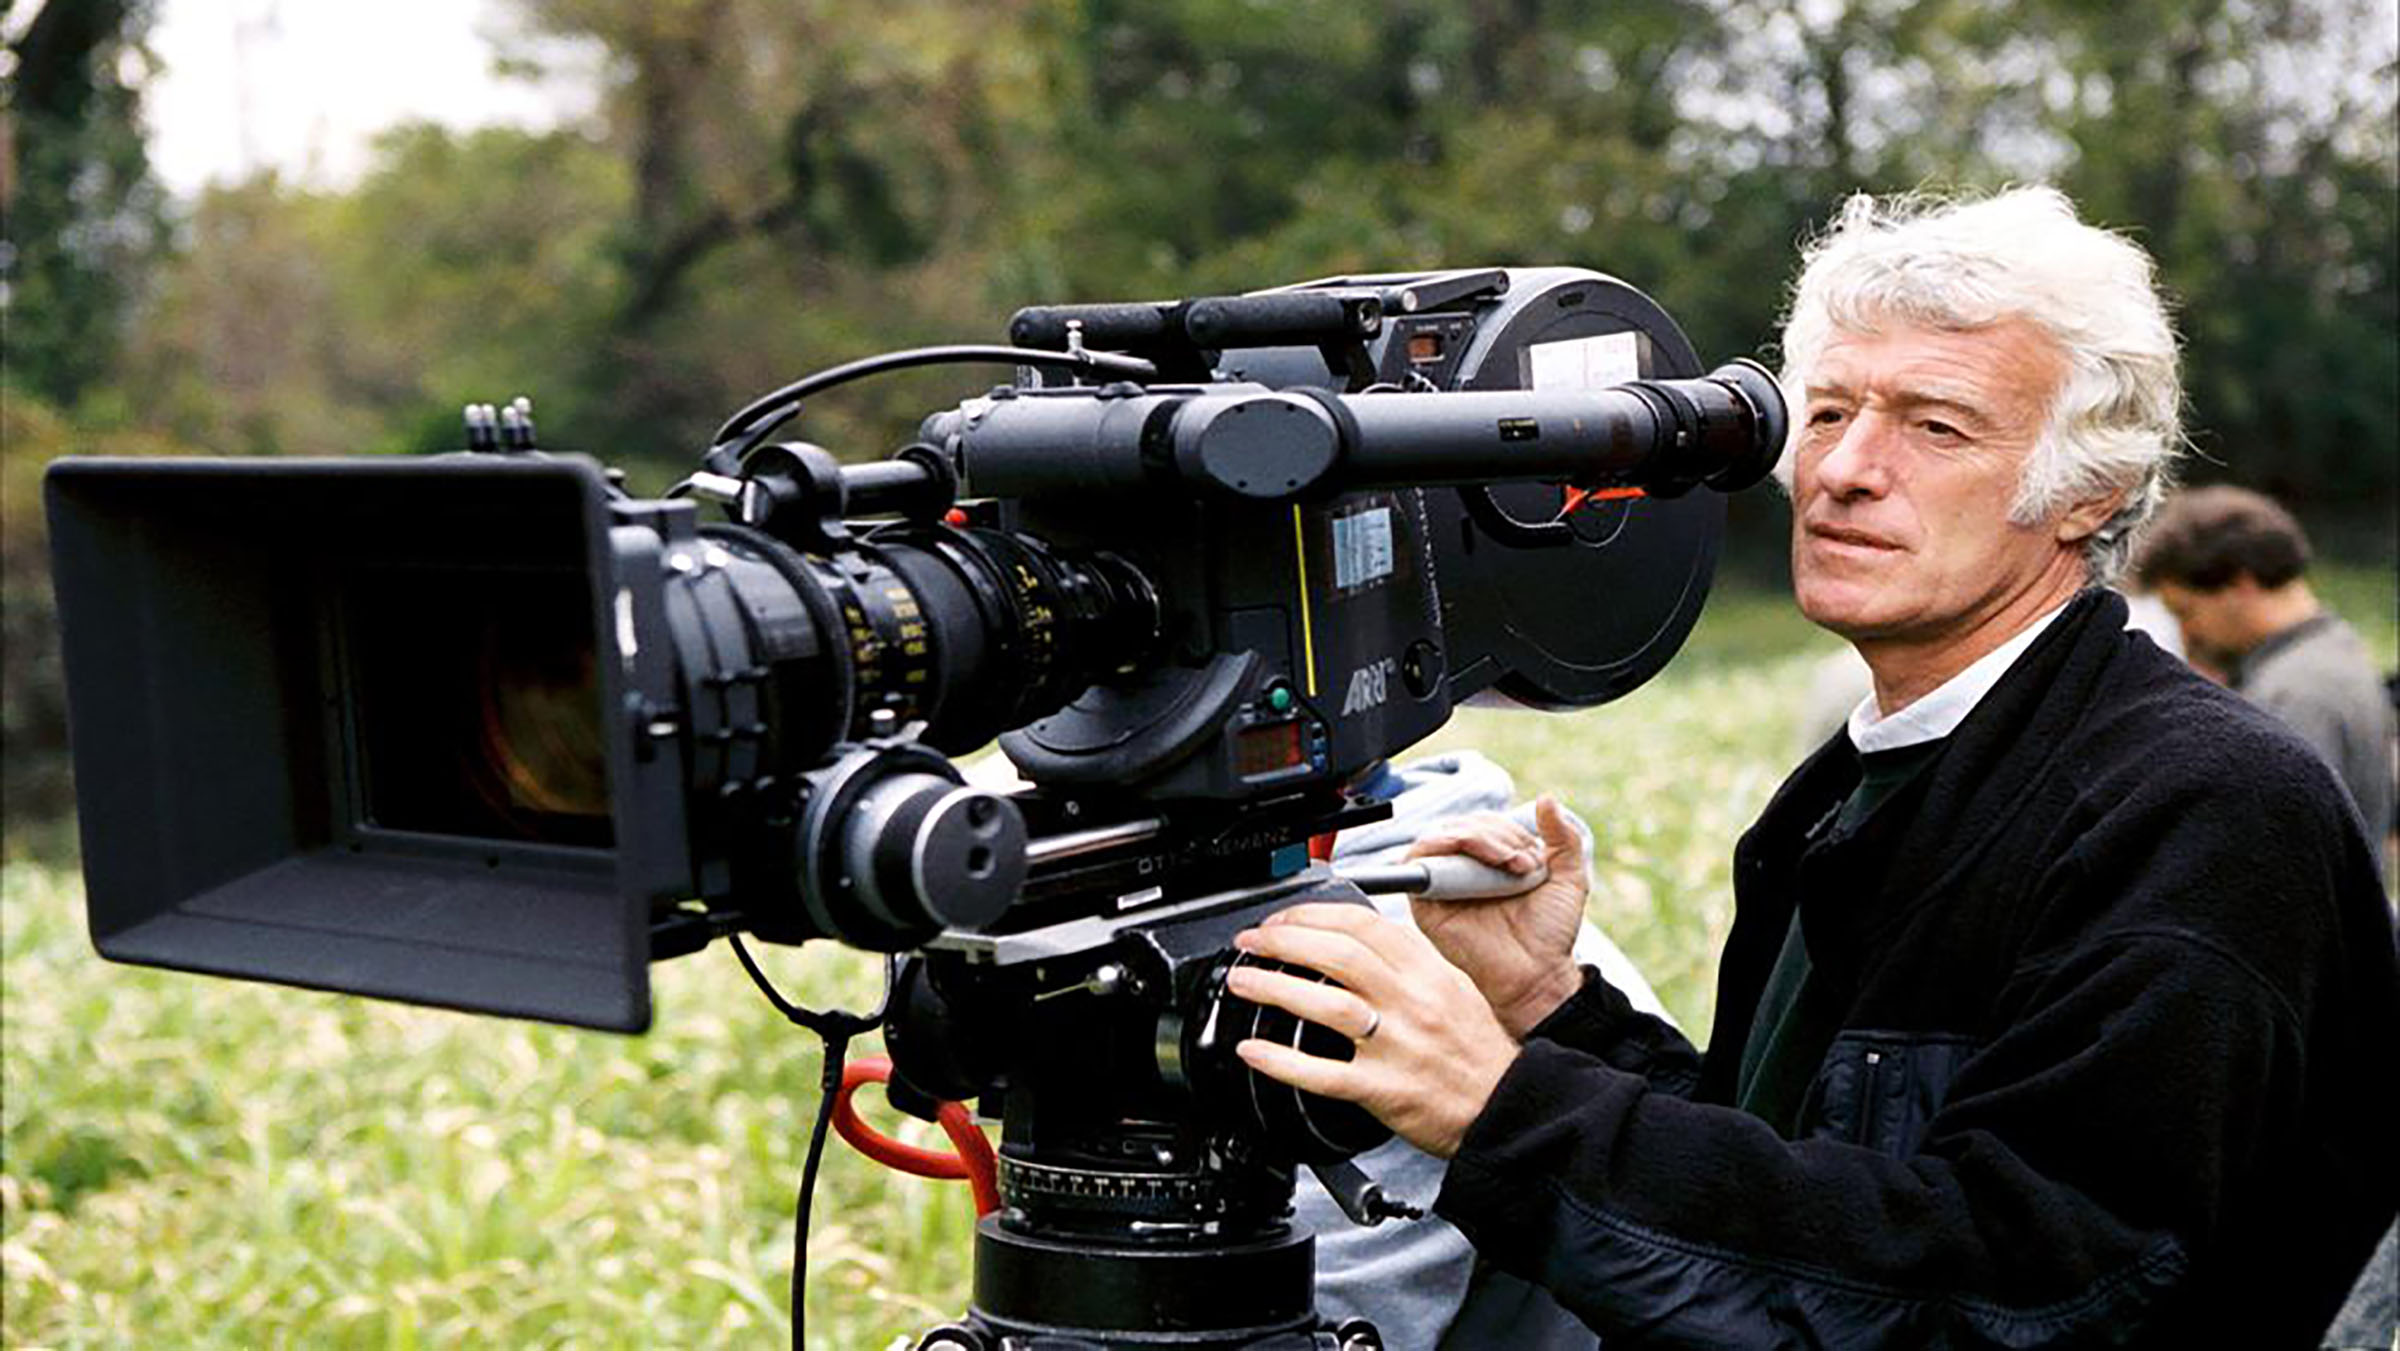 Cinematographer Roger Deakins on set. He's known for Fargo, Blade Runner 2049, and The Assassination of Jesse James by the Coward Robert Ford to name a few.